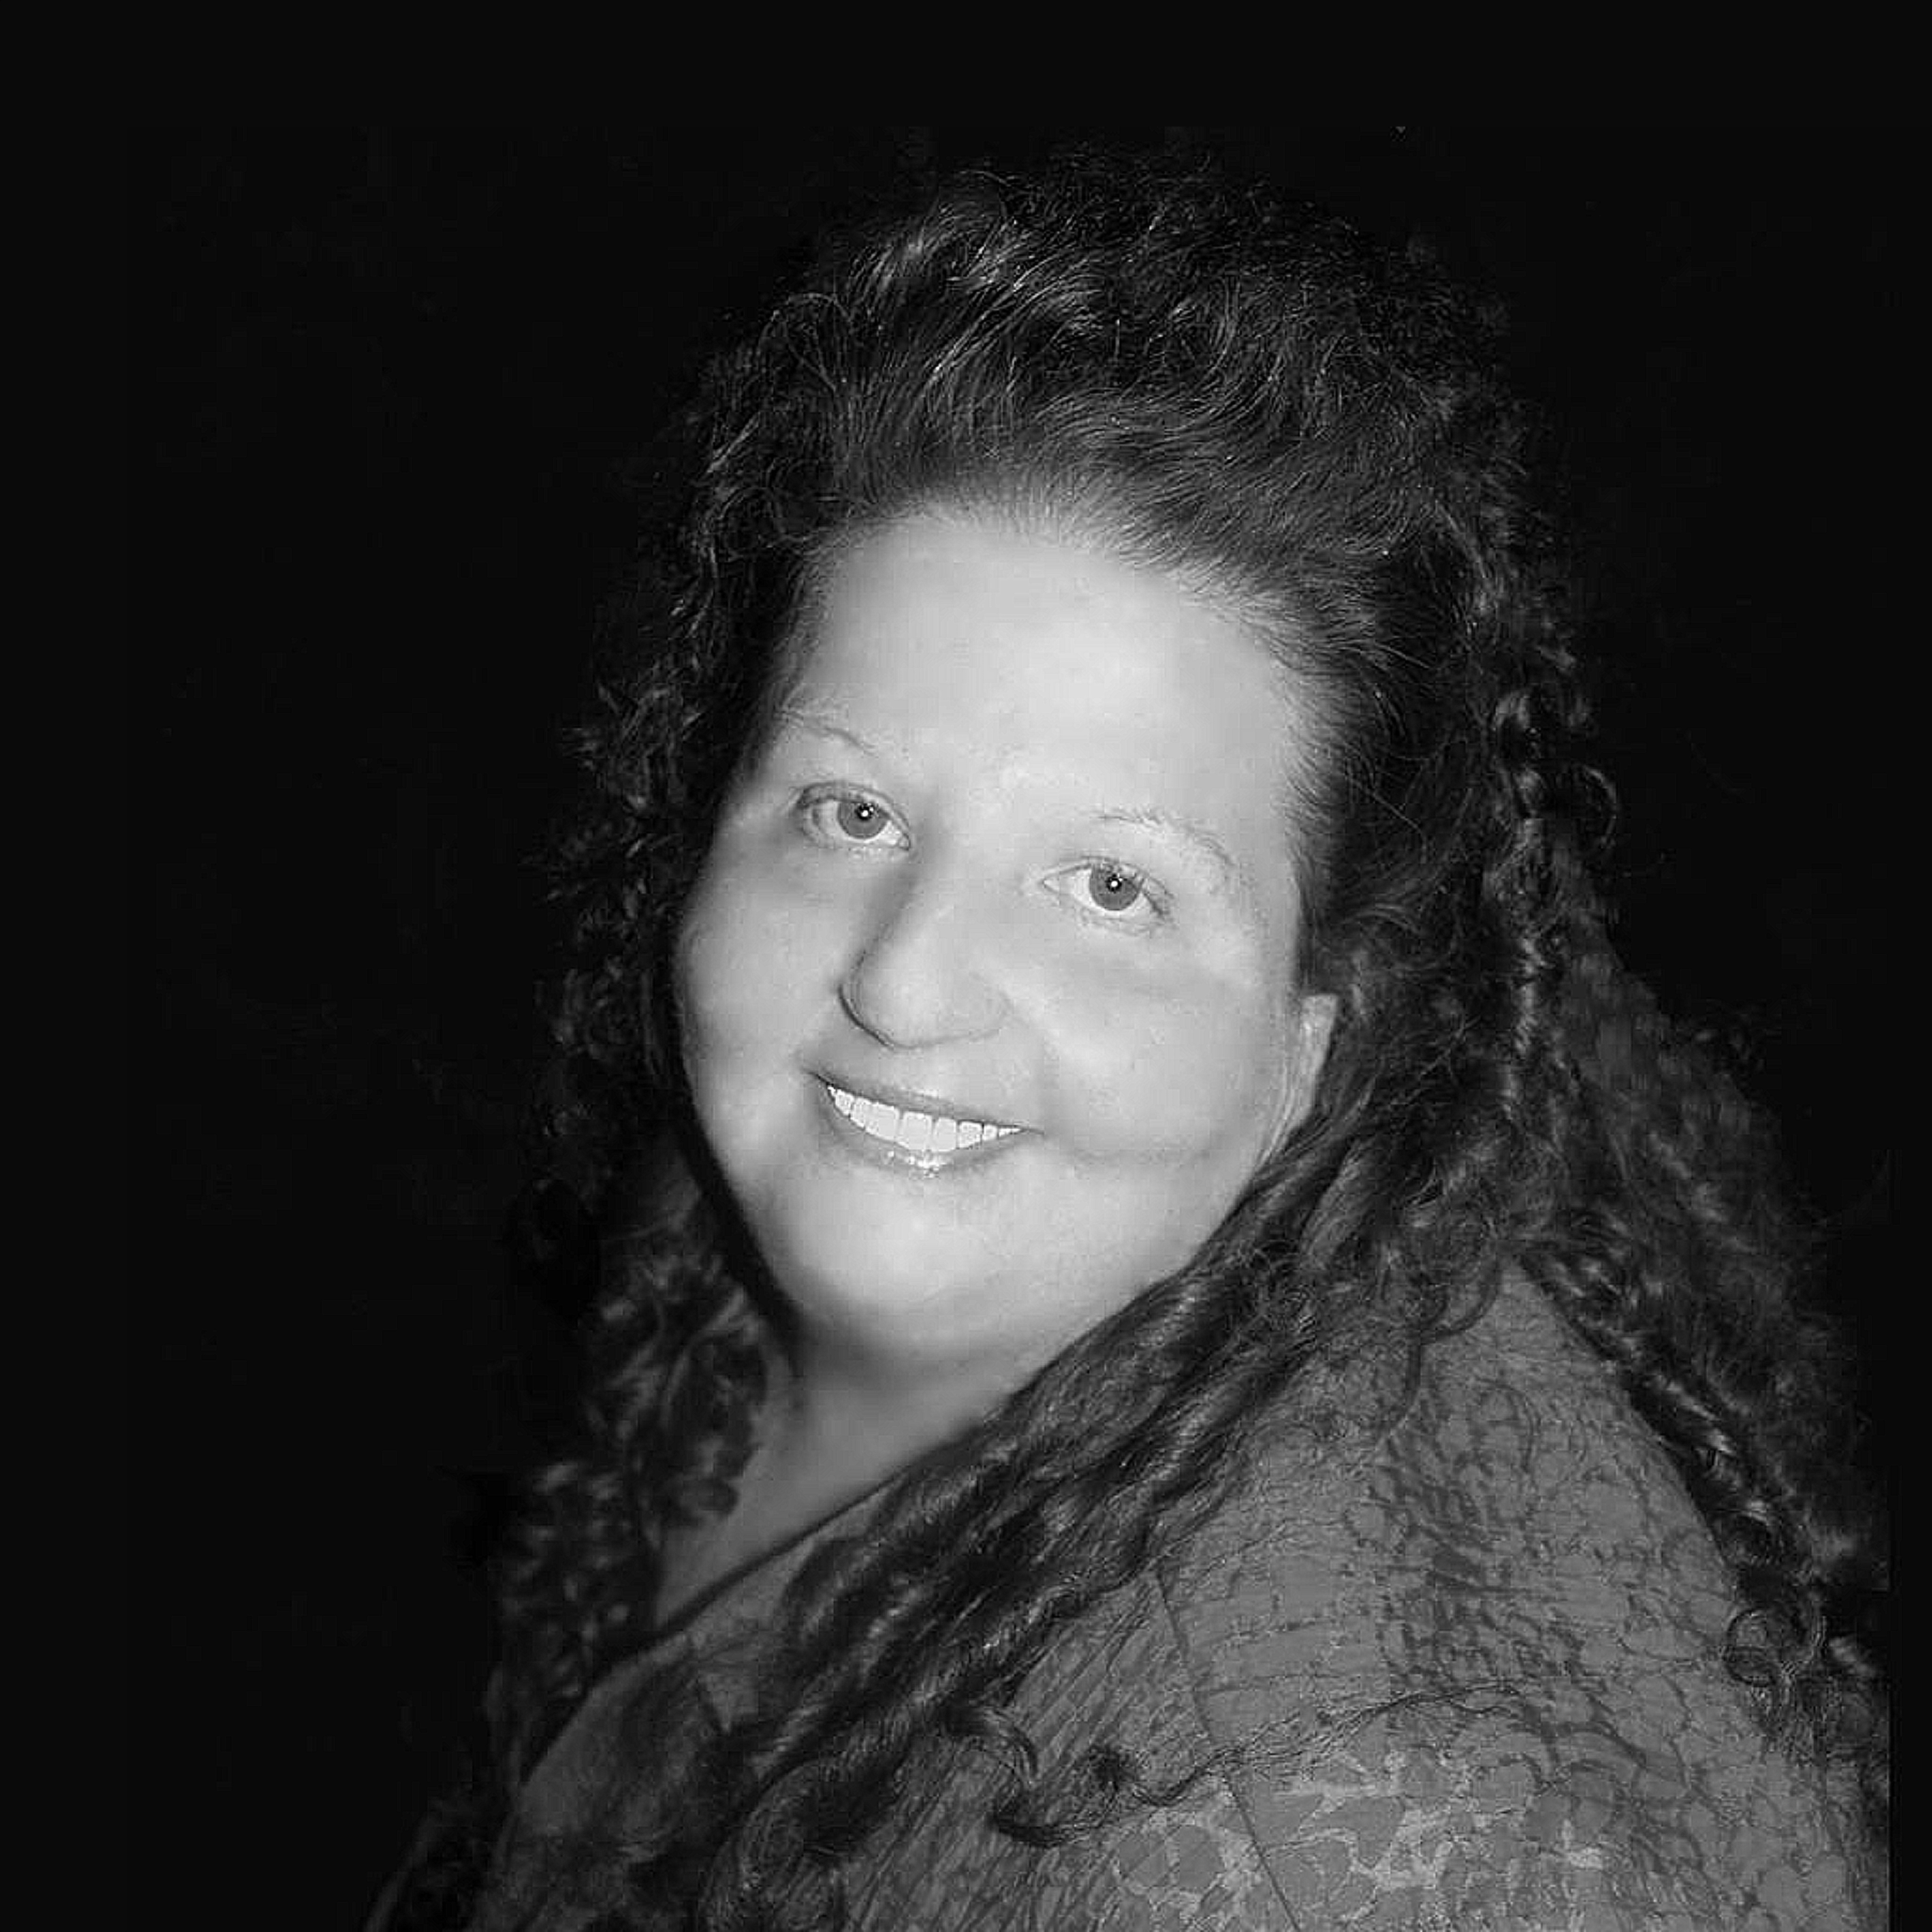 Karen Gillespie - Karen is a prolific songwriter with songs recorded by many artists including, Greater Vision, The Collingsworth family, The Old Paths, The Whisnants, Allison Speer, Beyond The Ashes, 11th Hour, The Hyssong's and more. She has had 3 top 20 songs and a number 1 song